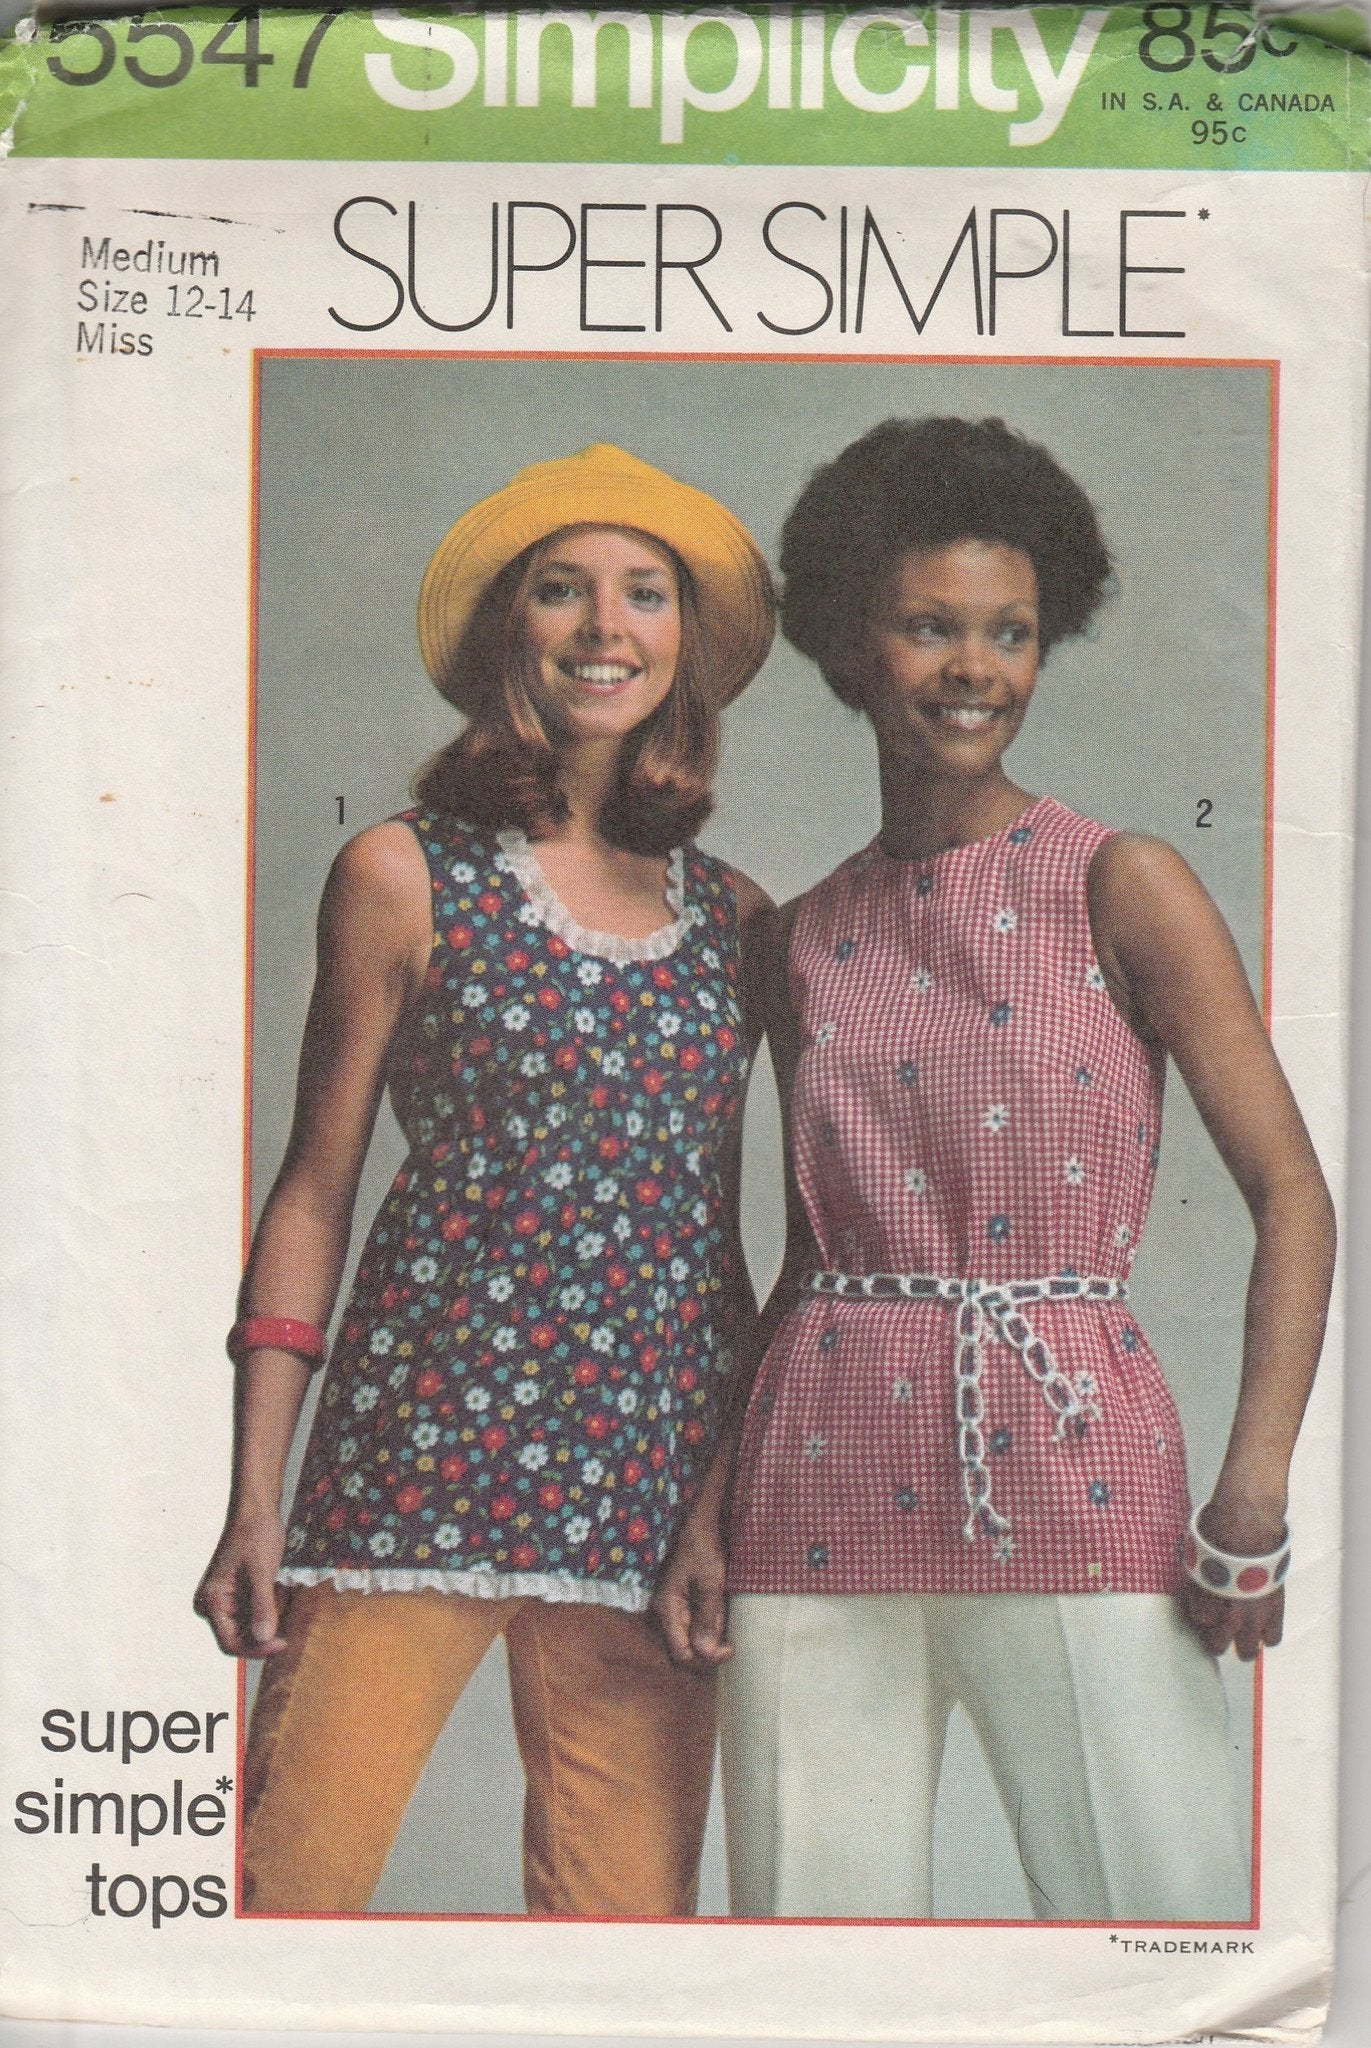 Simplicity 5547 Vintage Sewing Pattern 1970's Ladies Sleeveless Tops Super Simple - VintageStitching - Vintage Sewing Patterns